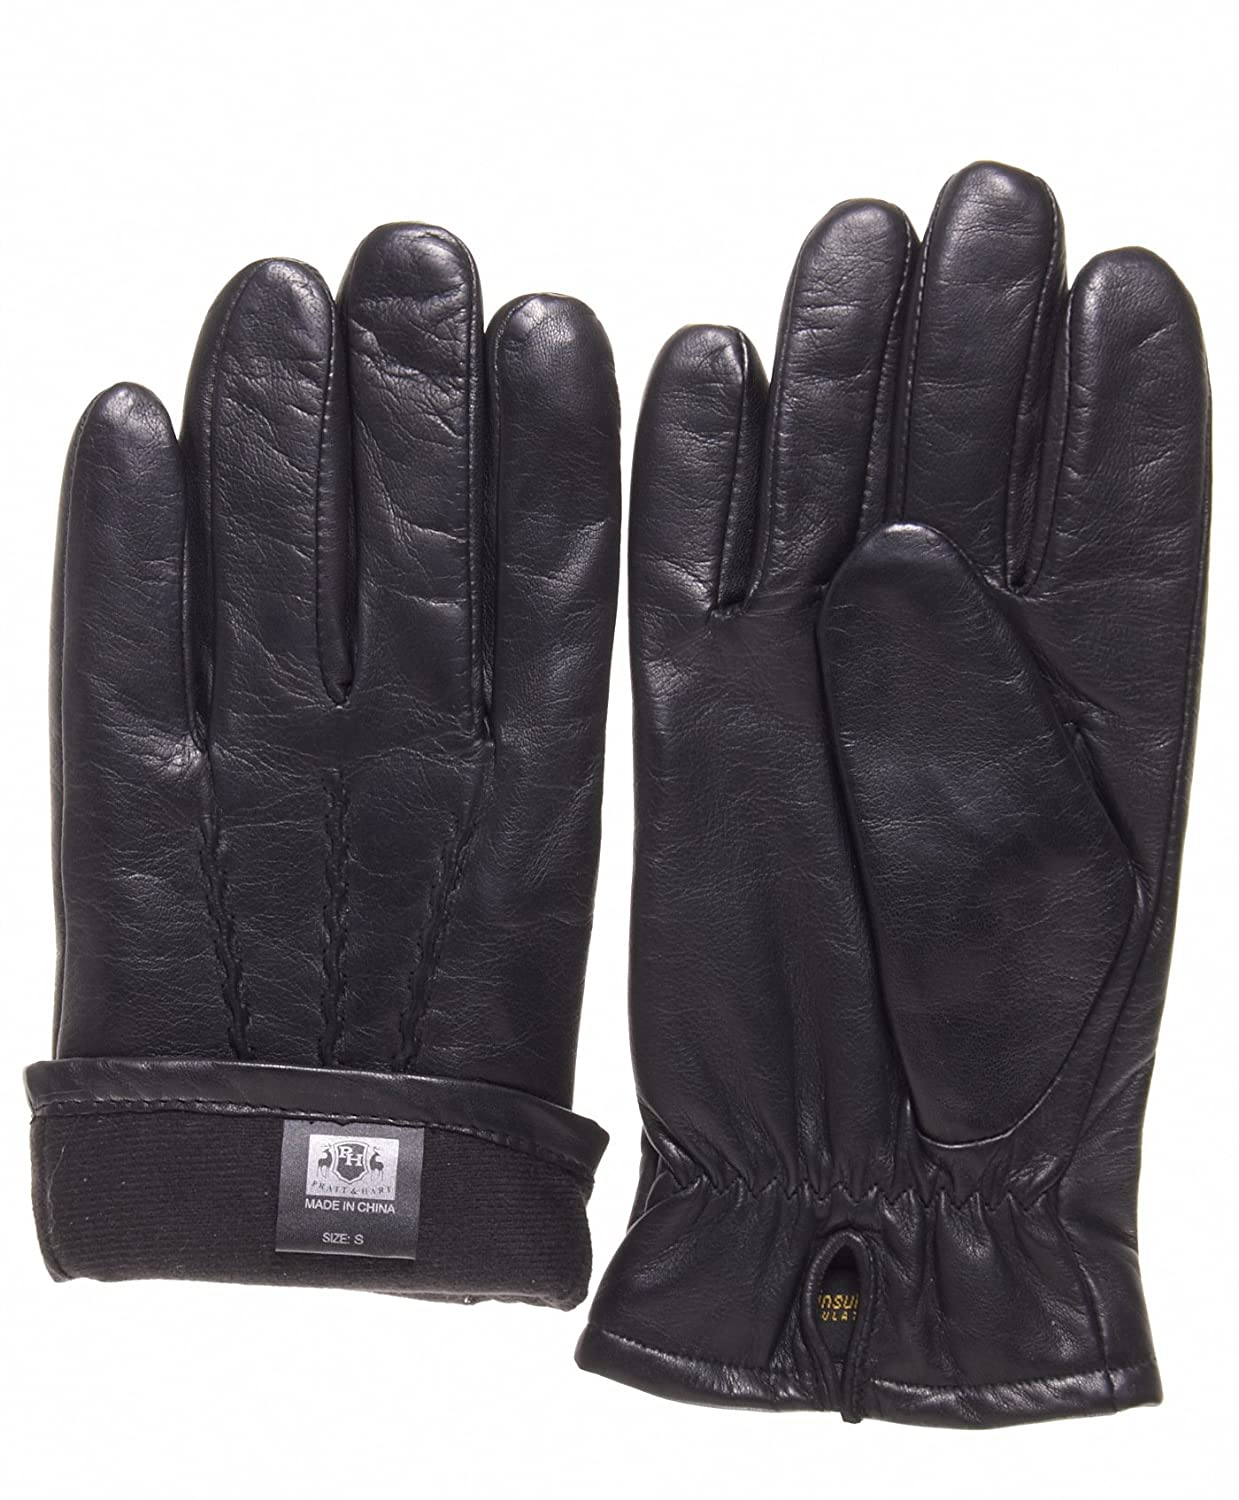 Mens gloves fashion - Pratt And Hart Men S Lambskin Winter Leather Gloves With Thinsulate Lining At Amazon Men S Clothing Store Cold Weather Gloves